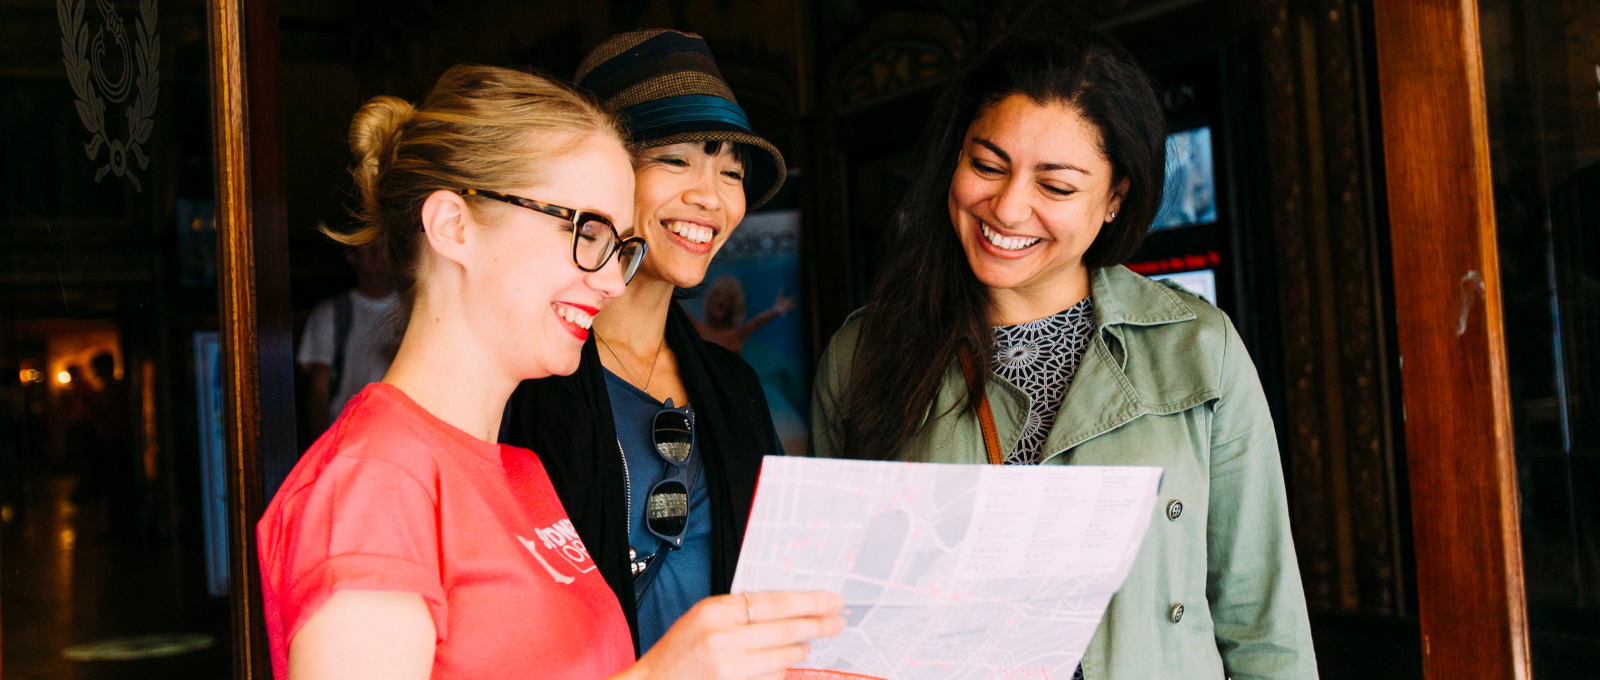 <p>Sydney Open volunteer speaking with visitors at the entrance to the State Theatre.&nbsp;Photo &copy; Haley Richardson for Sydney Living Museums</p>